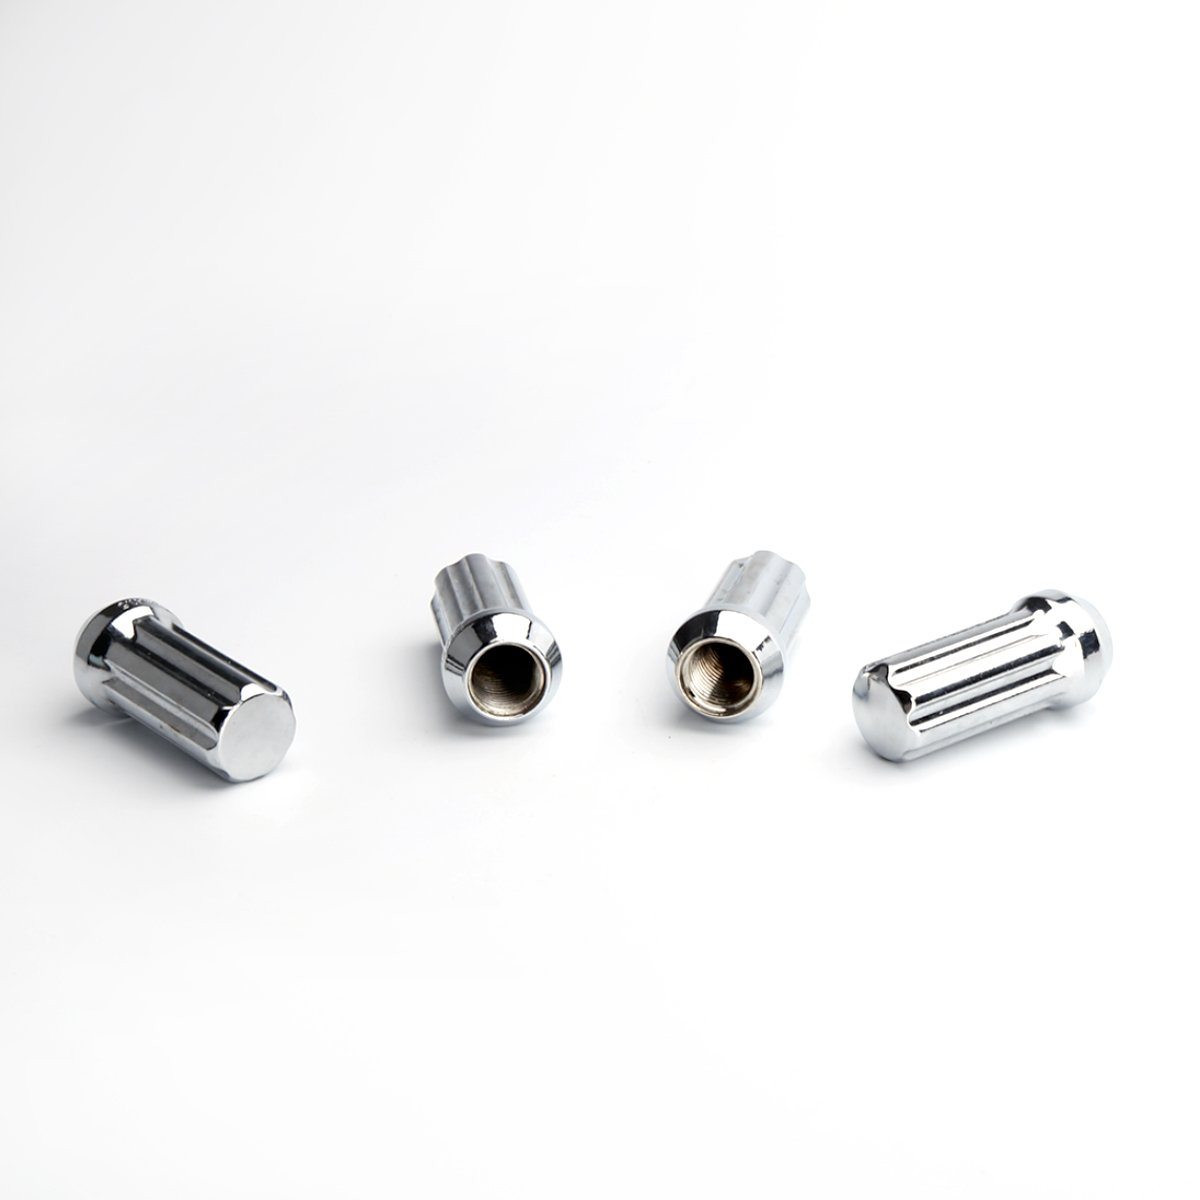 KSP Performance 24PC KSP 14mmx1.5(M14x1.5 thread pitch),60 Degree Conical Cone Seat Wheel Lug Nuts,Closed End 7 Spilne With 2 Keys For Chevy GMC Silverado Sierra Hummer With 6 Lugs Trucks by KSP Performance (Image #2)